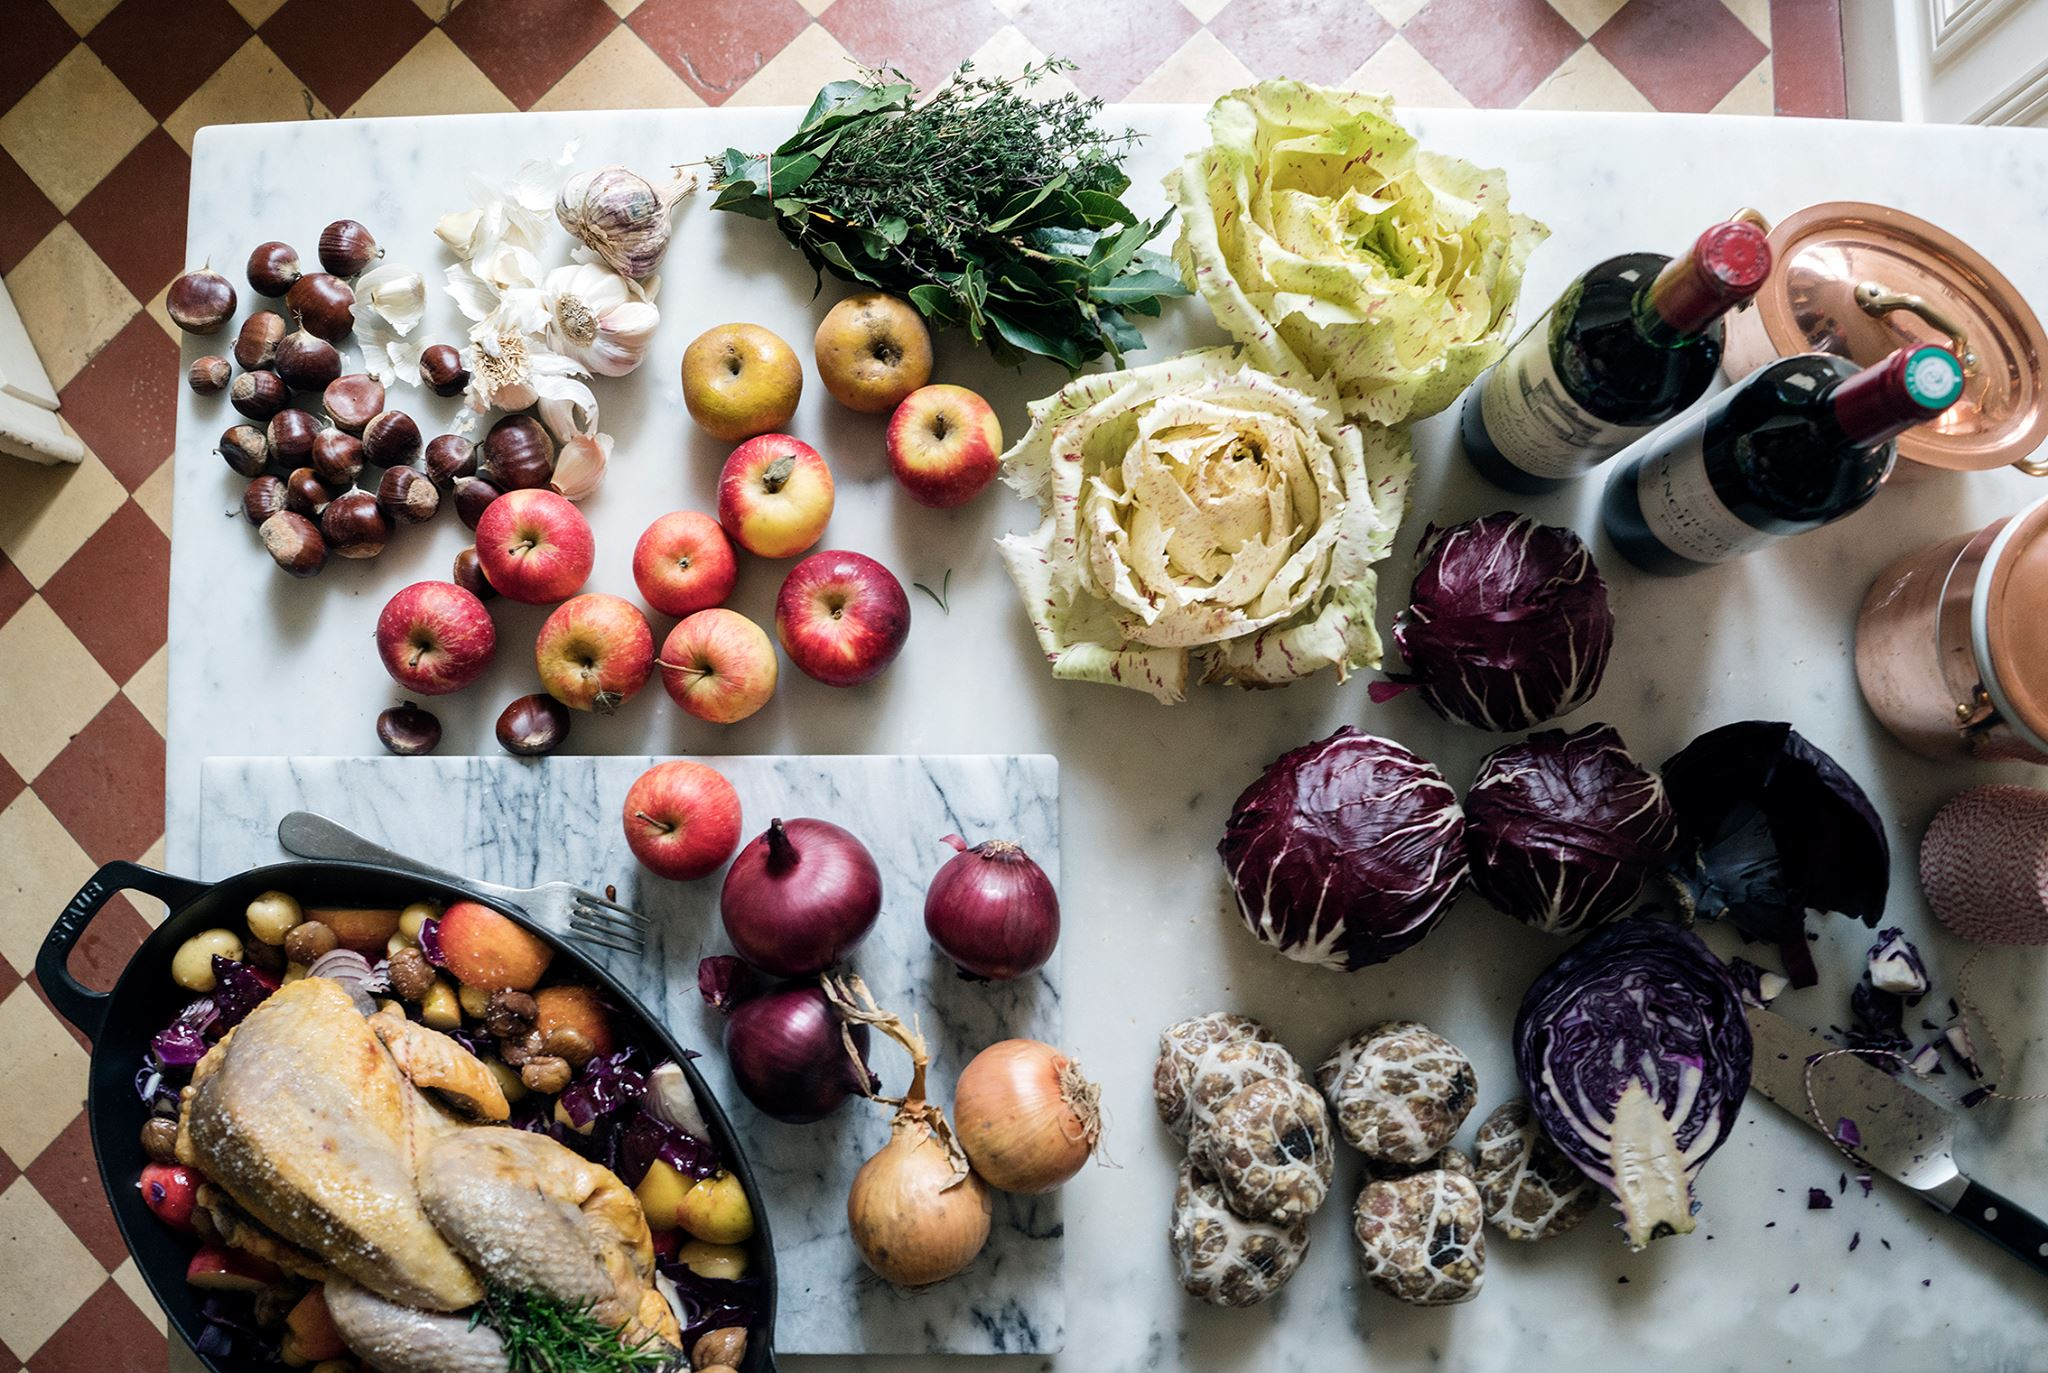 A sunlit-flooded table overflows with fresh produce: Leafy greens; chestnuts; a chicken to roast; apples; and, of course, wine.